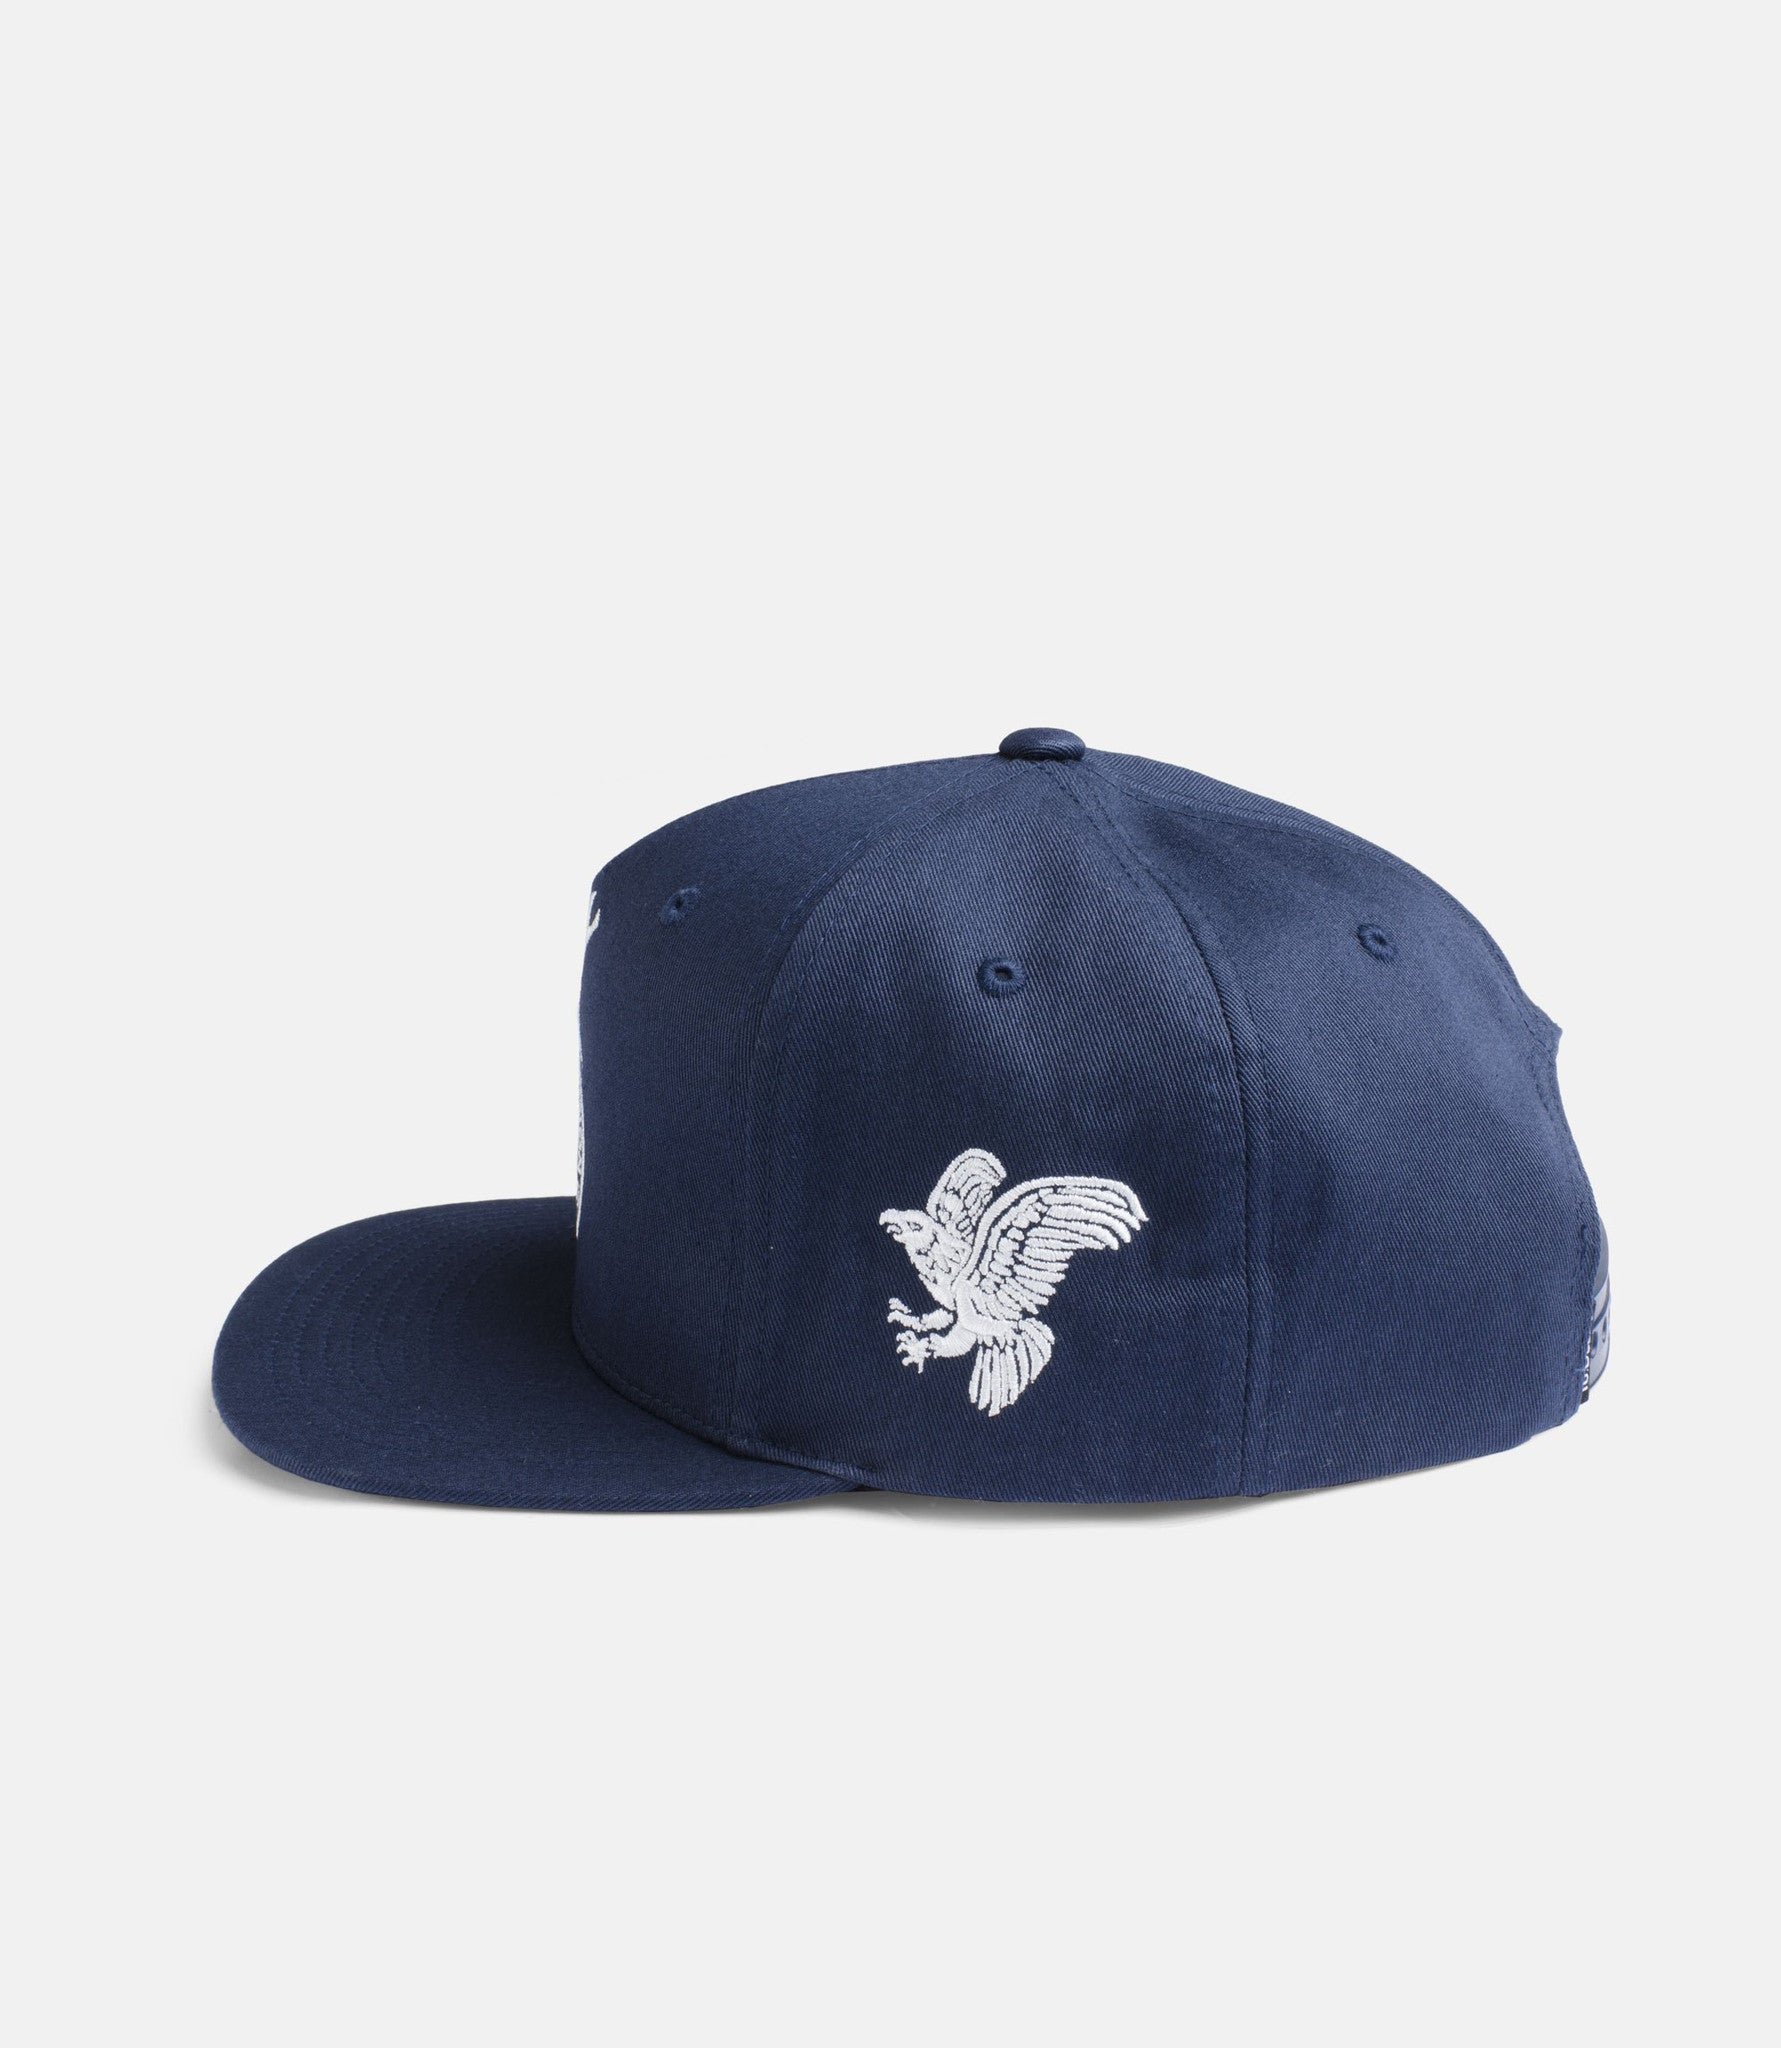 10Deep - Souvenir Snapback, Navy - The Giant Peach - 3